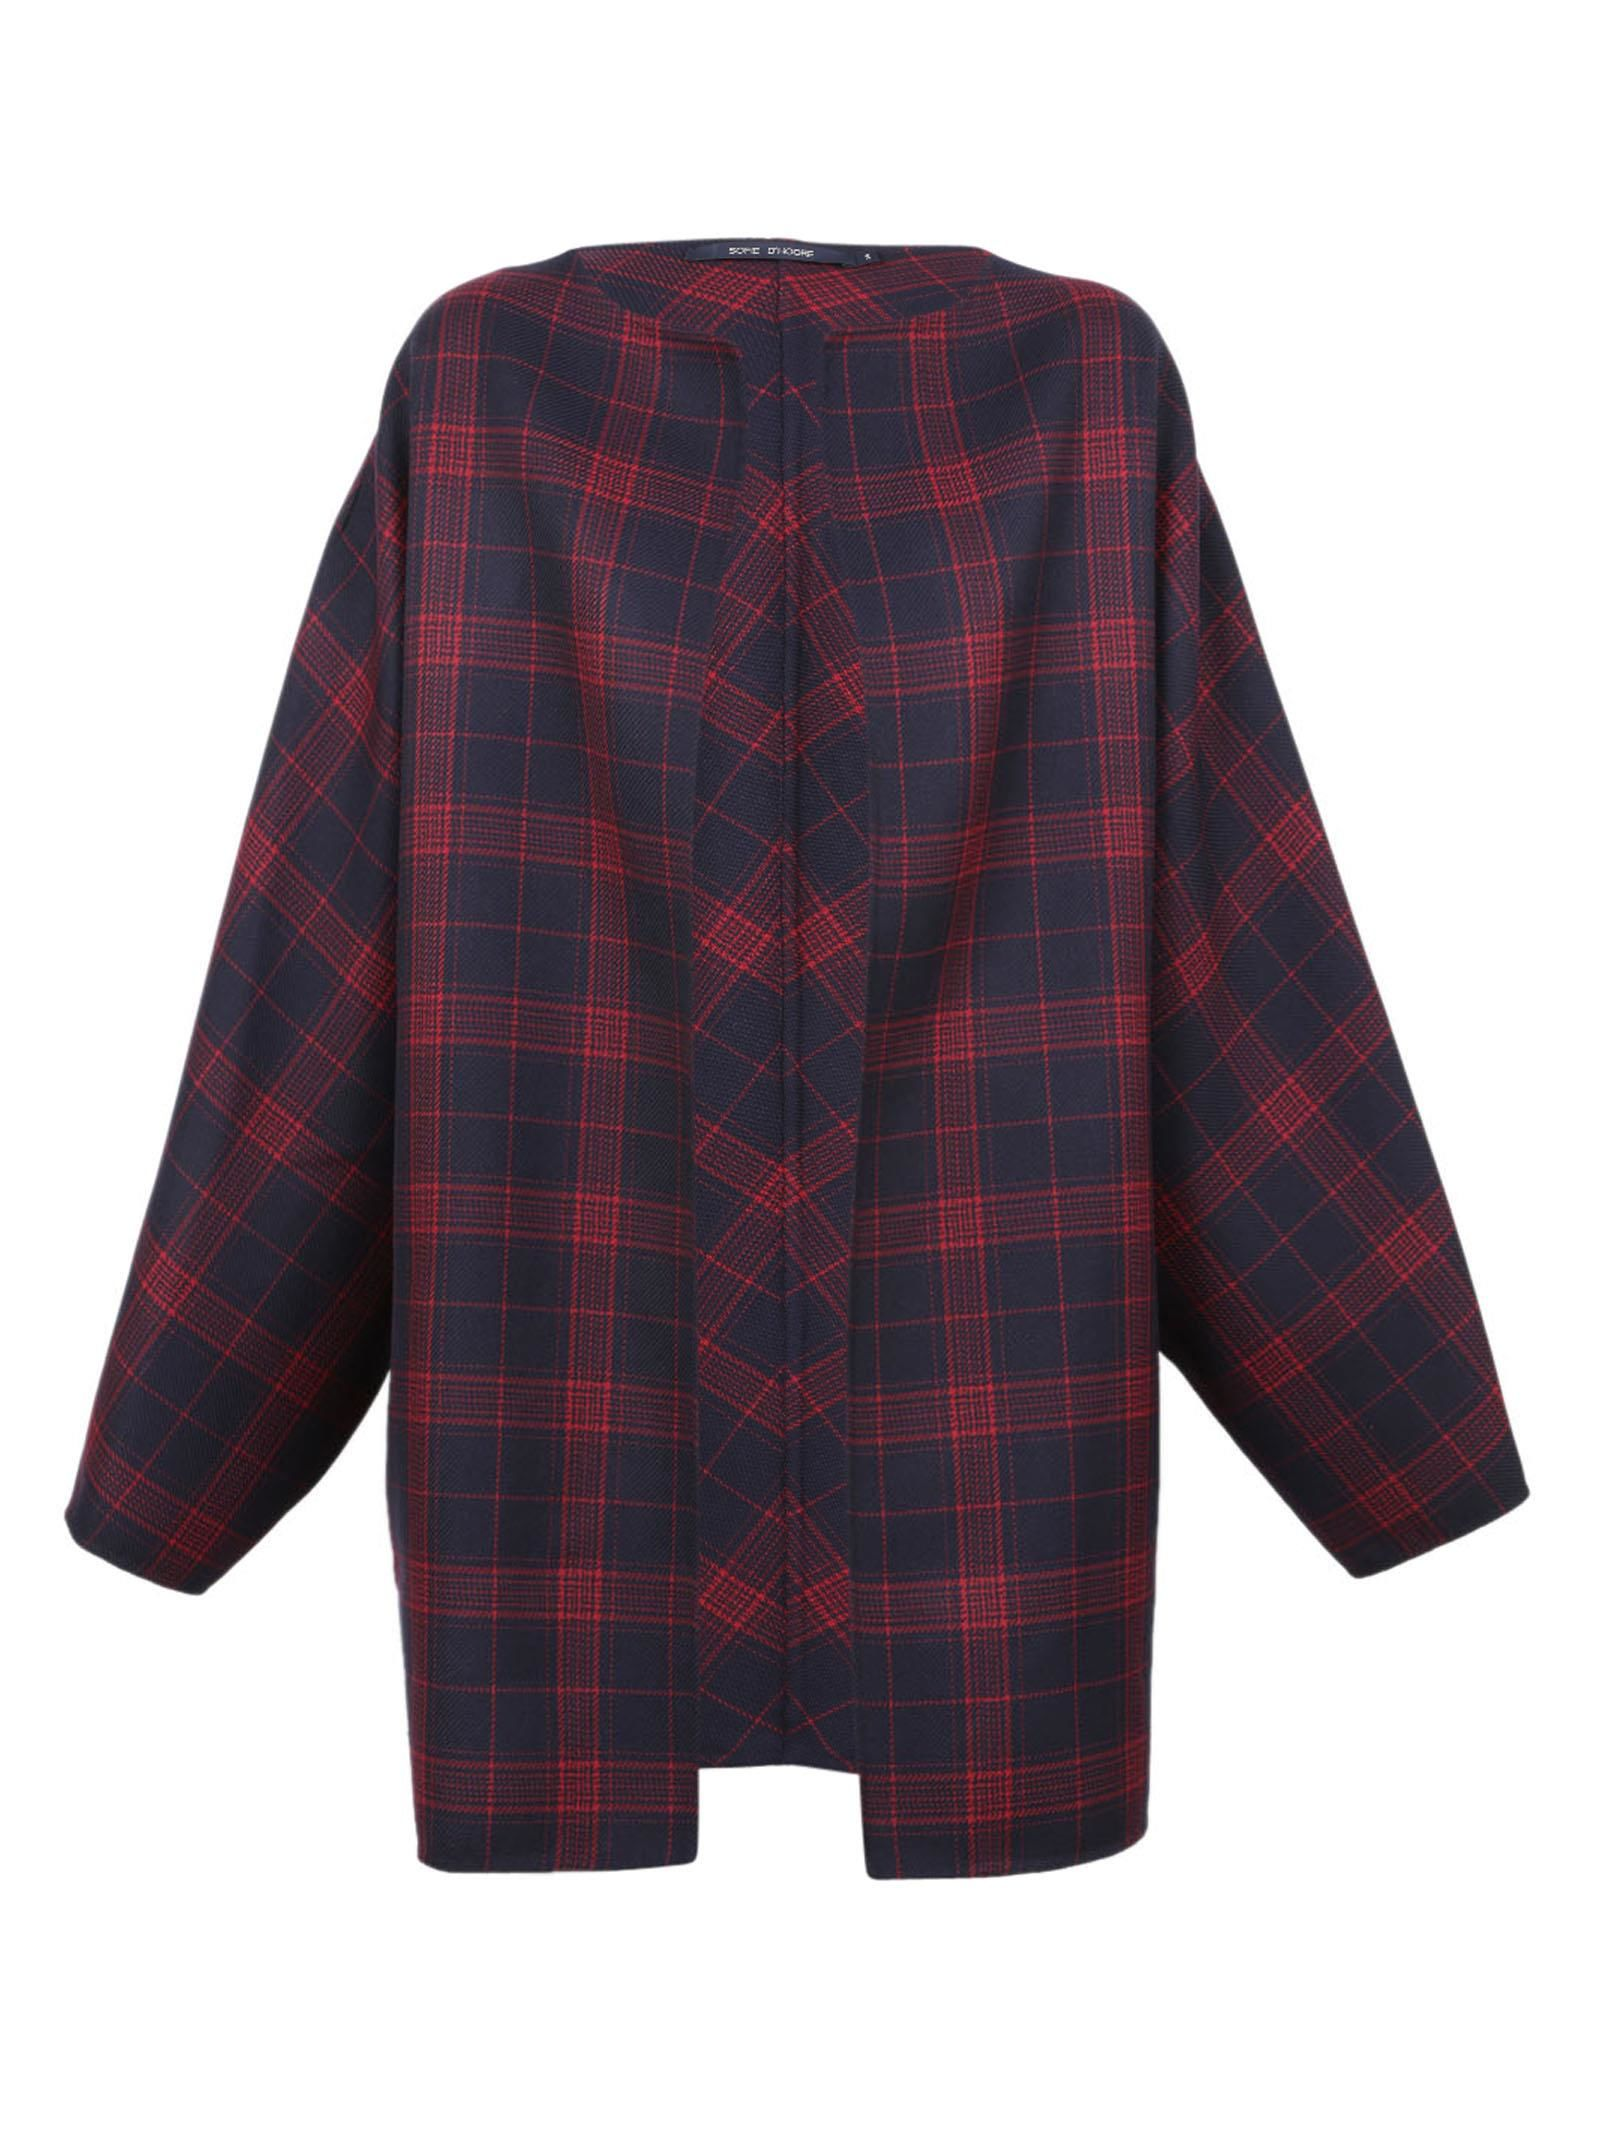 Sofie Dhoore Checkered Coat